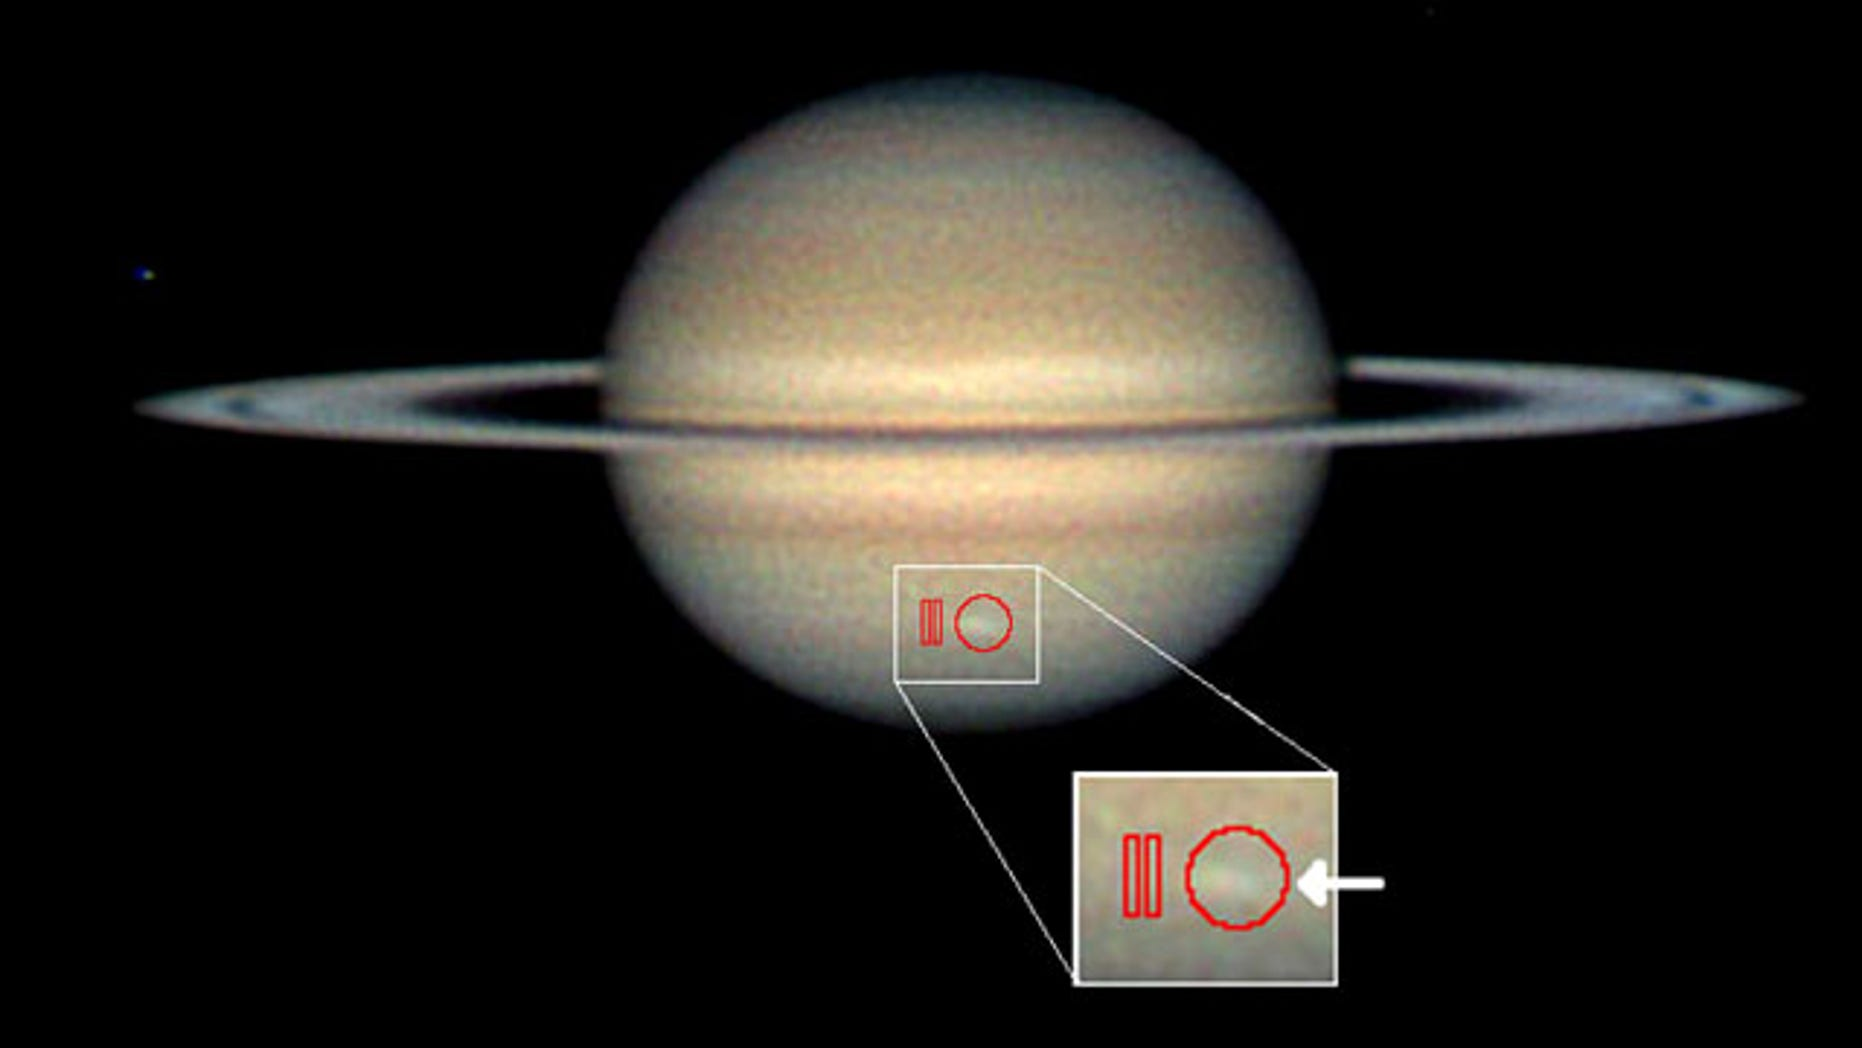 Amateur astronomer Christopher Go took this image of the storm on March 13, 2010. The arrow indicates the location of the storm and the red outlines show where Cassini's composite infrared spectrometer gathered data.